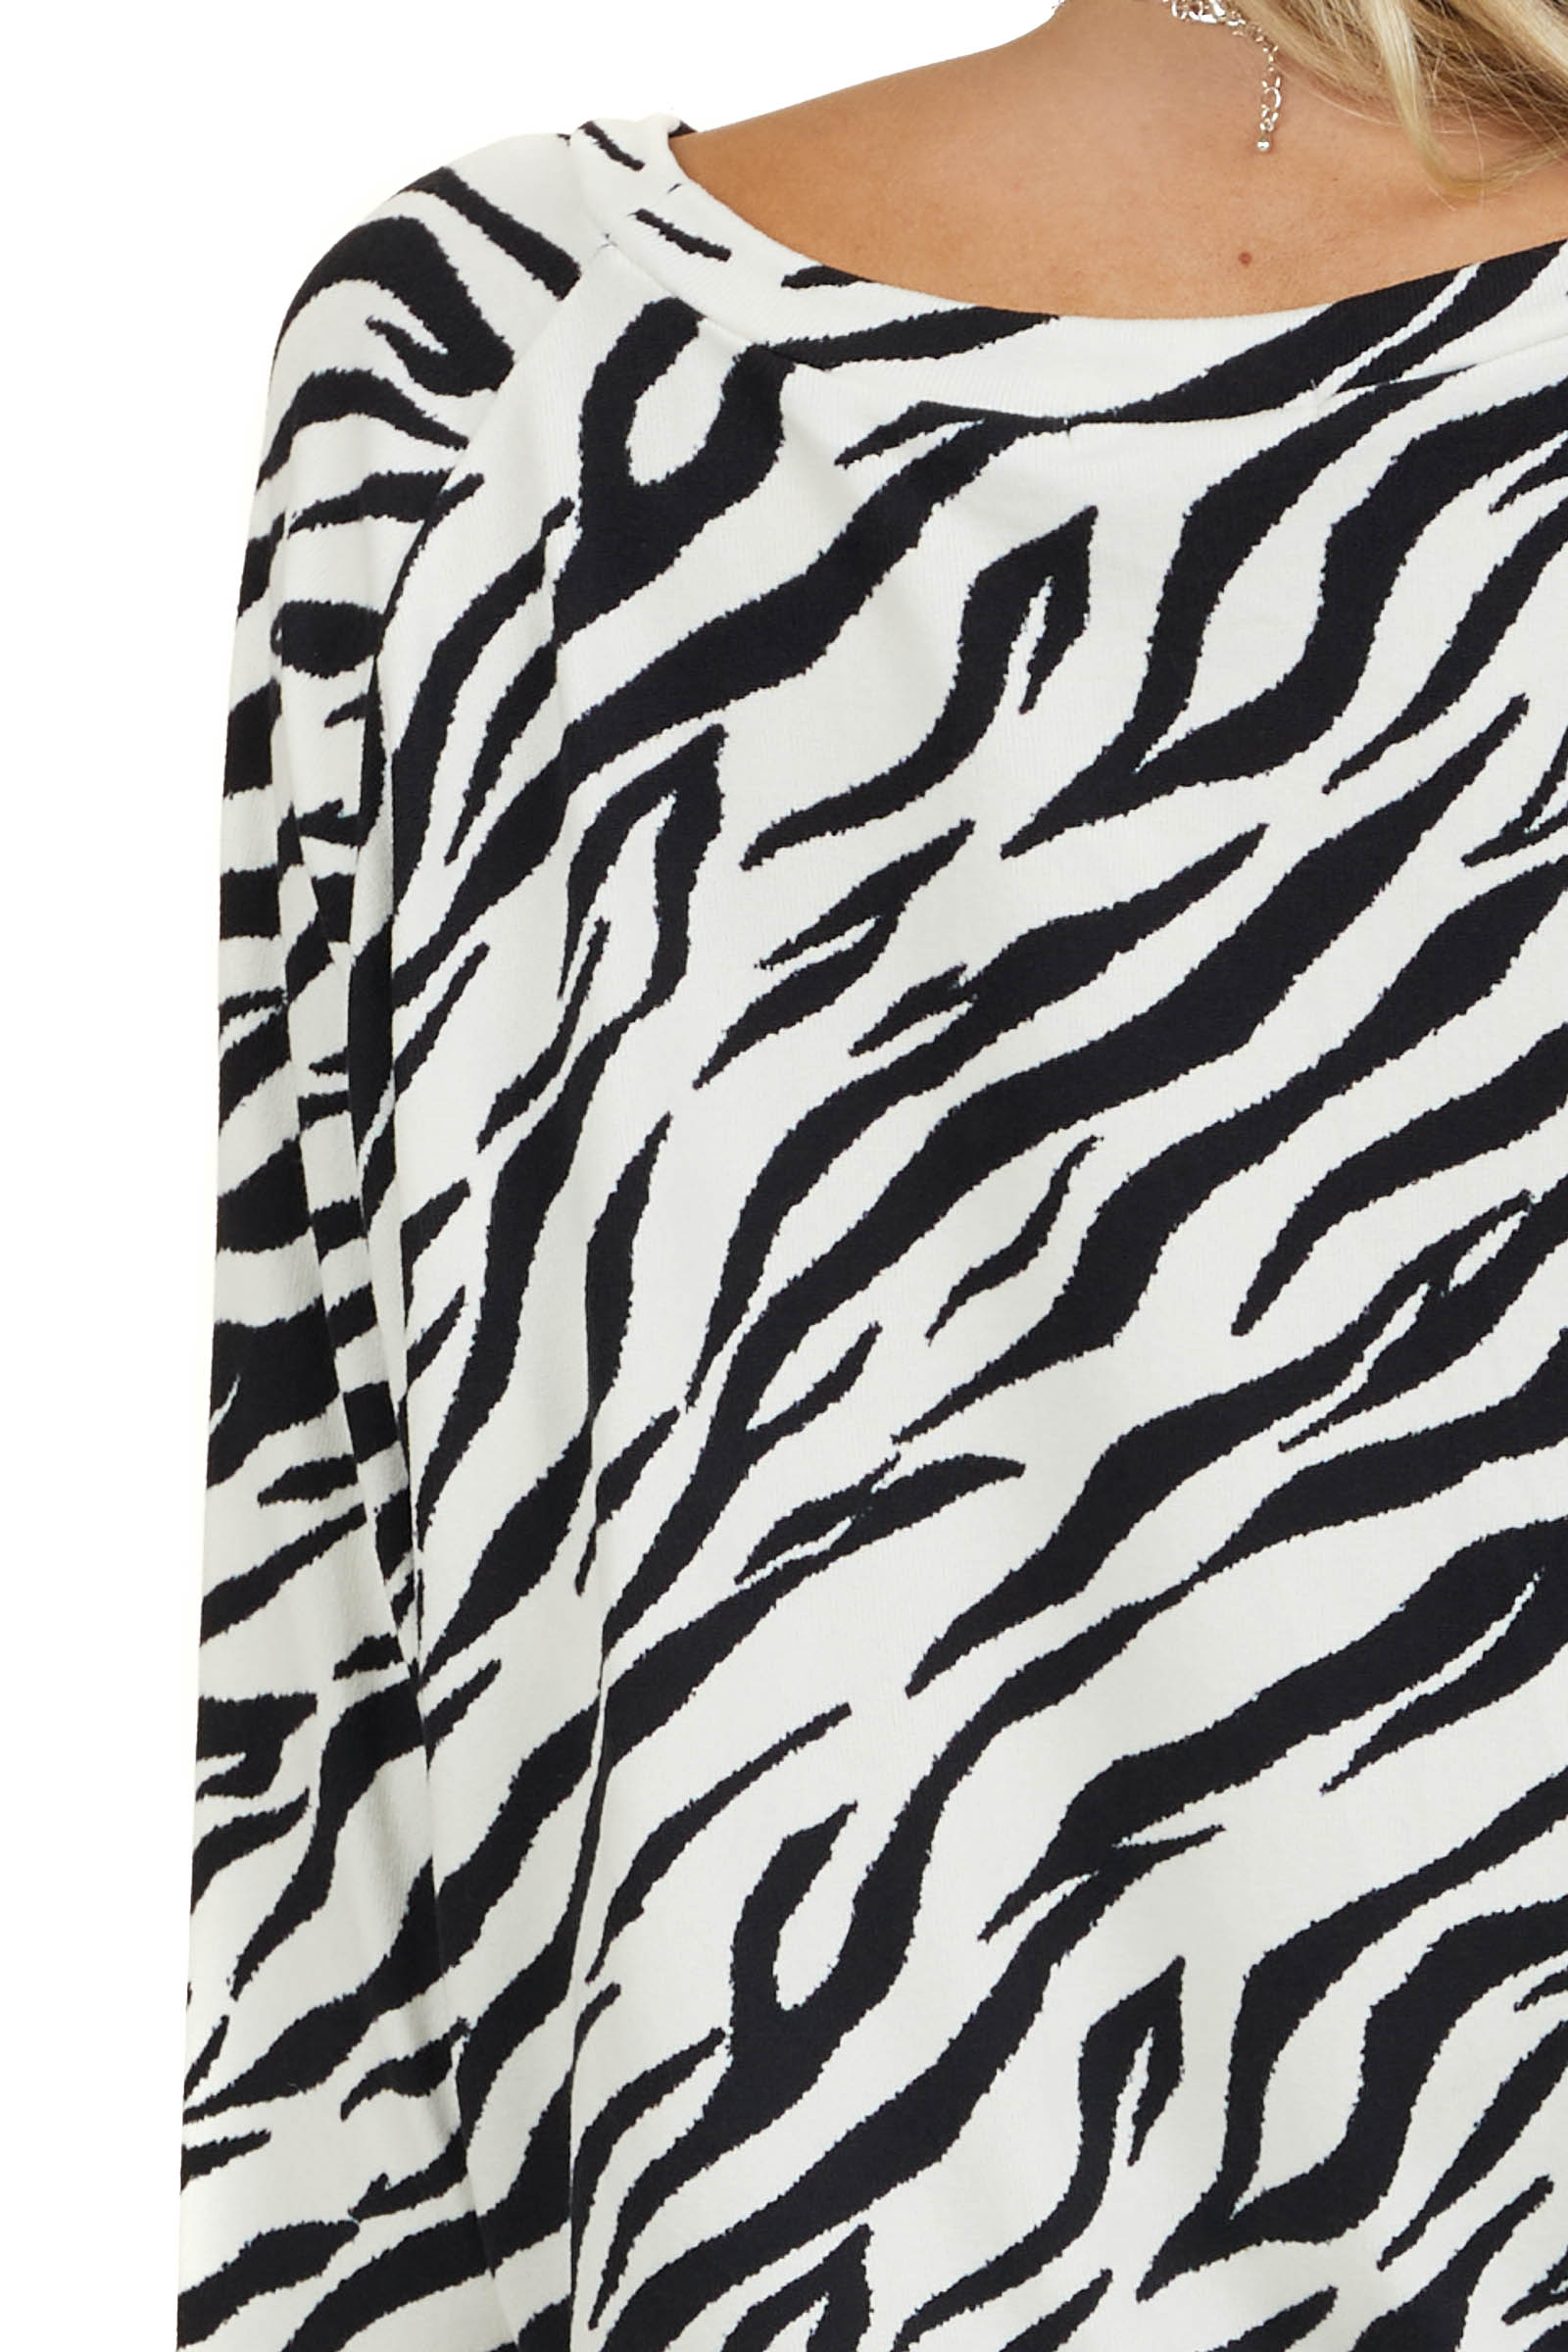 Ivory and Black Zebra Print Top with Long Dolman Sleeves